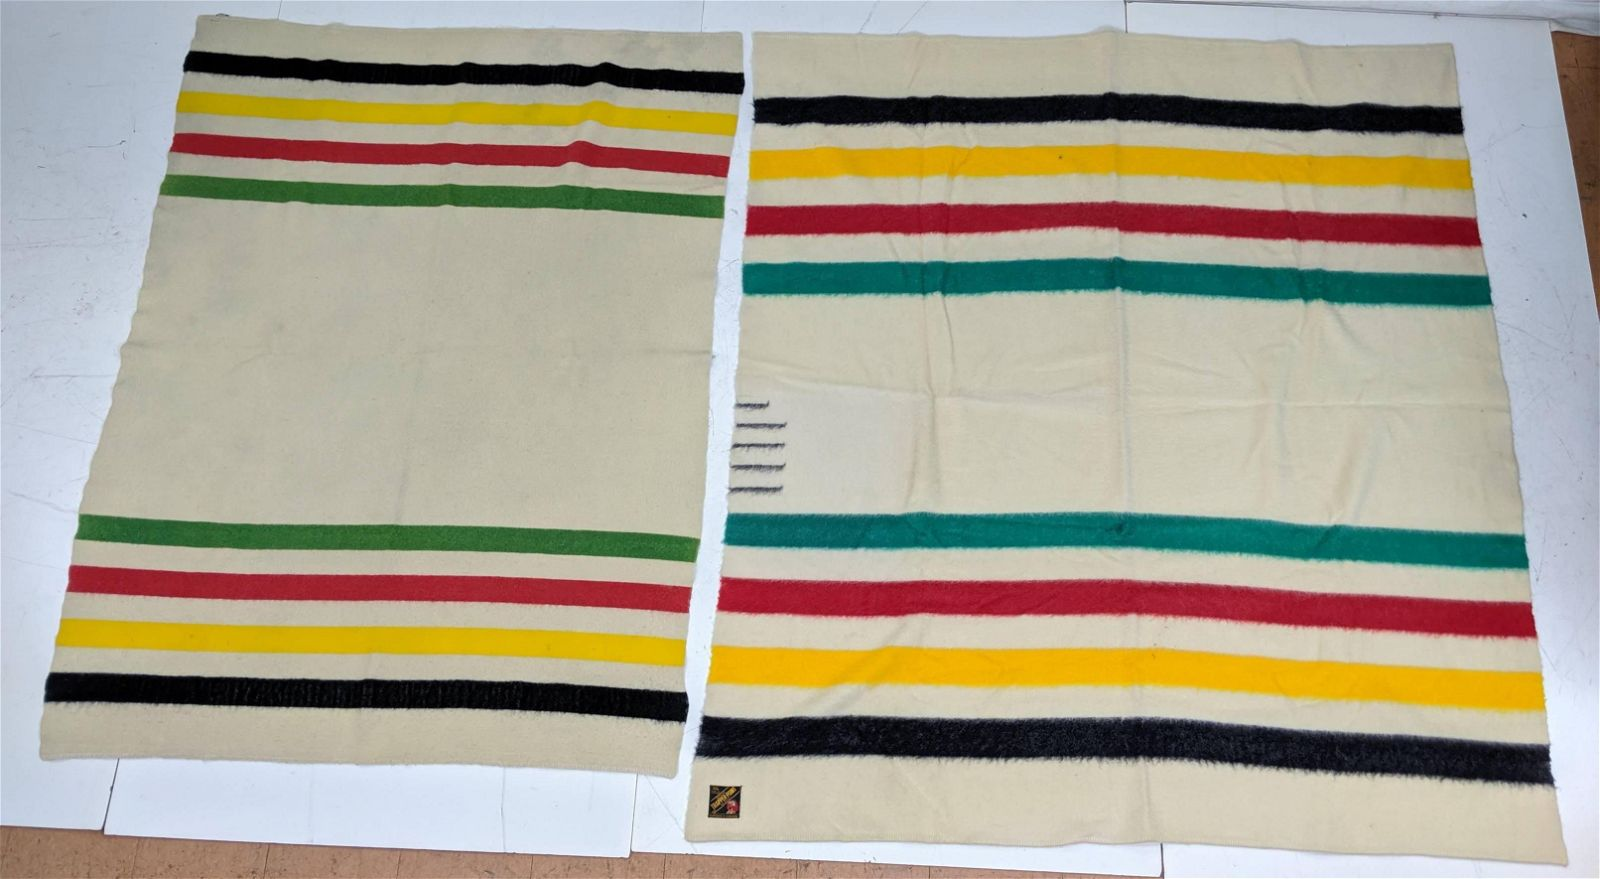 2 TRAPPER POINT Blankets. Striped Colorful Design